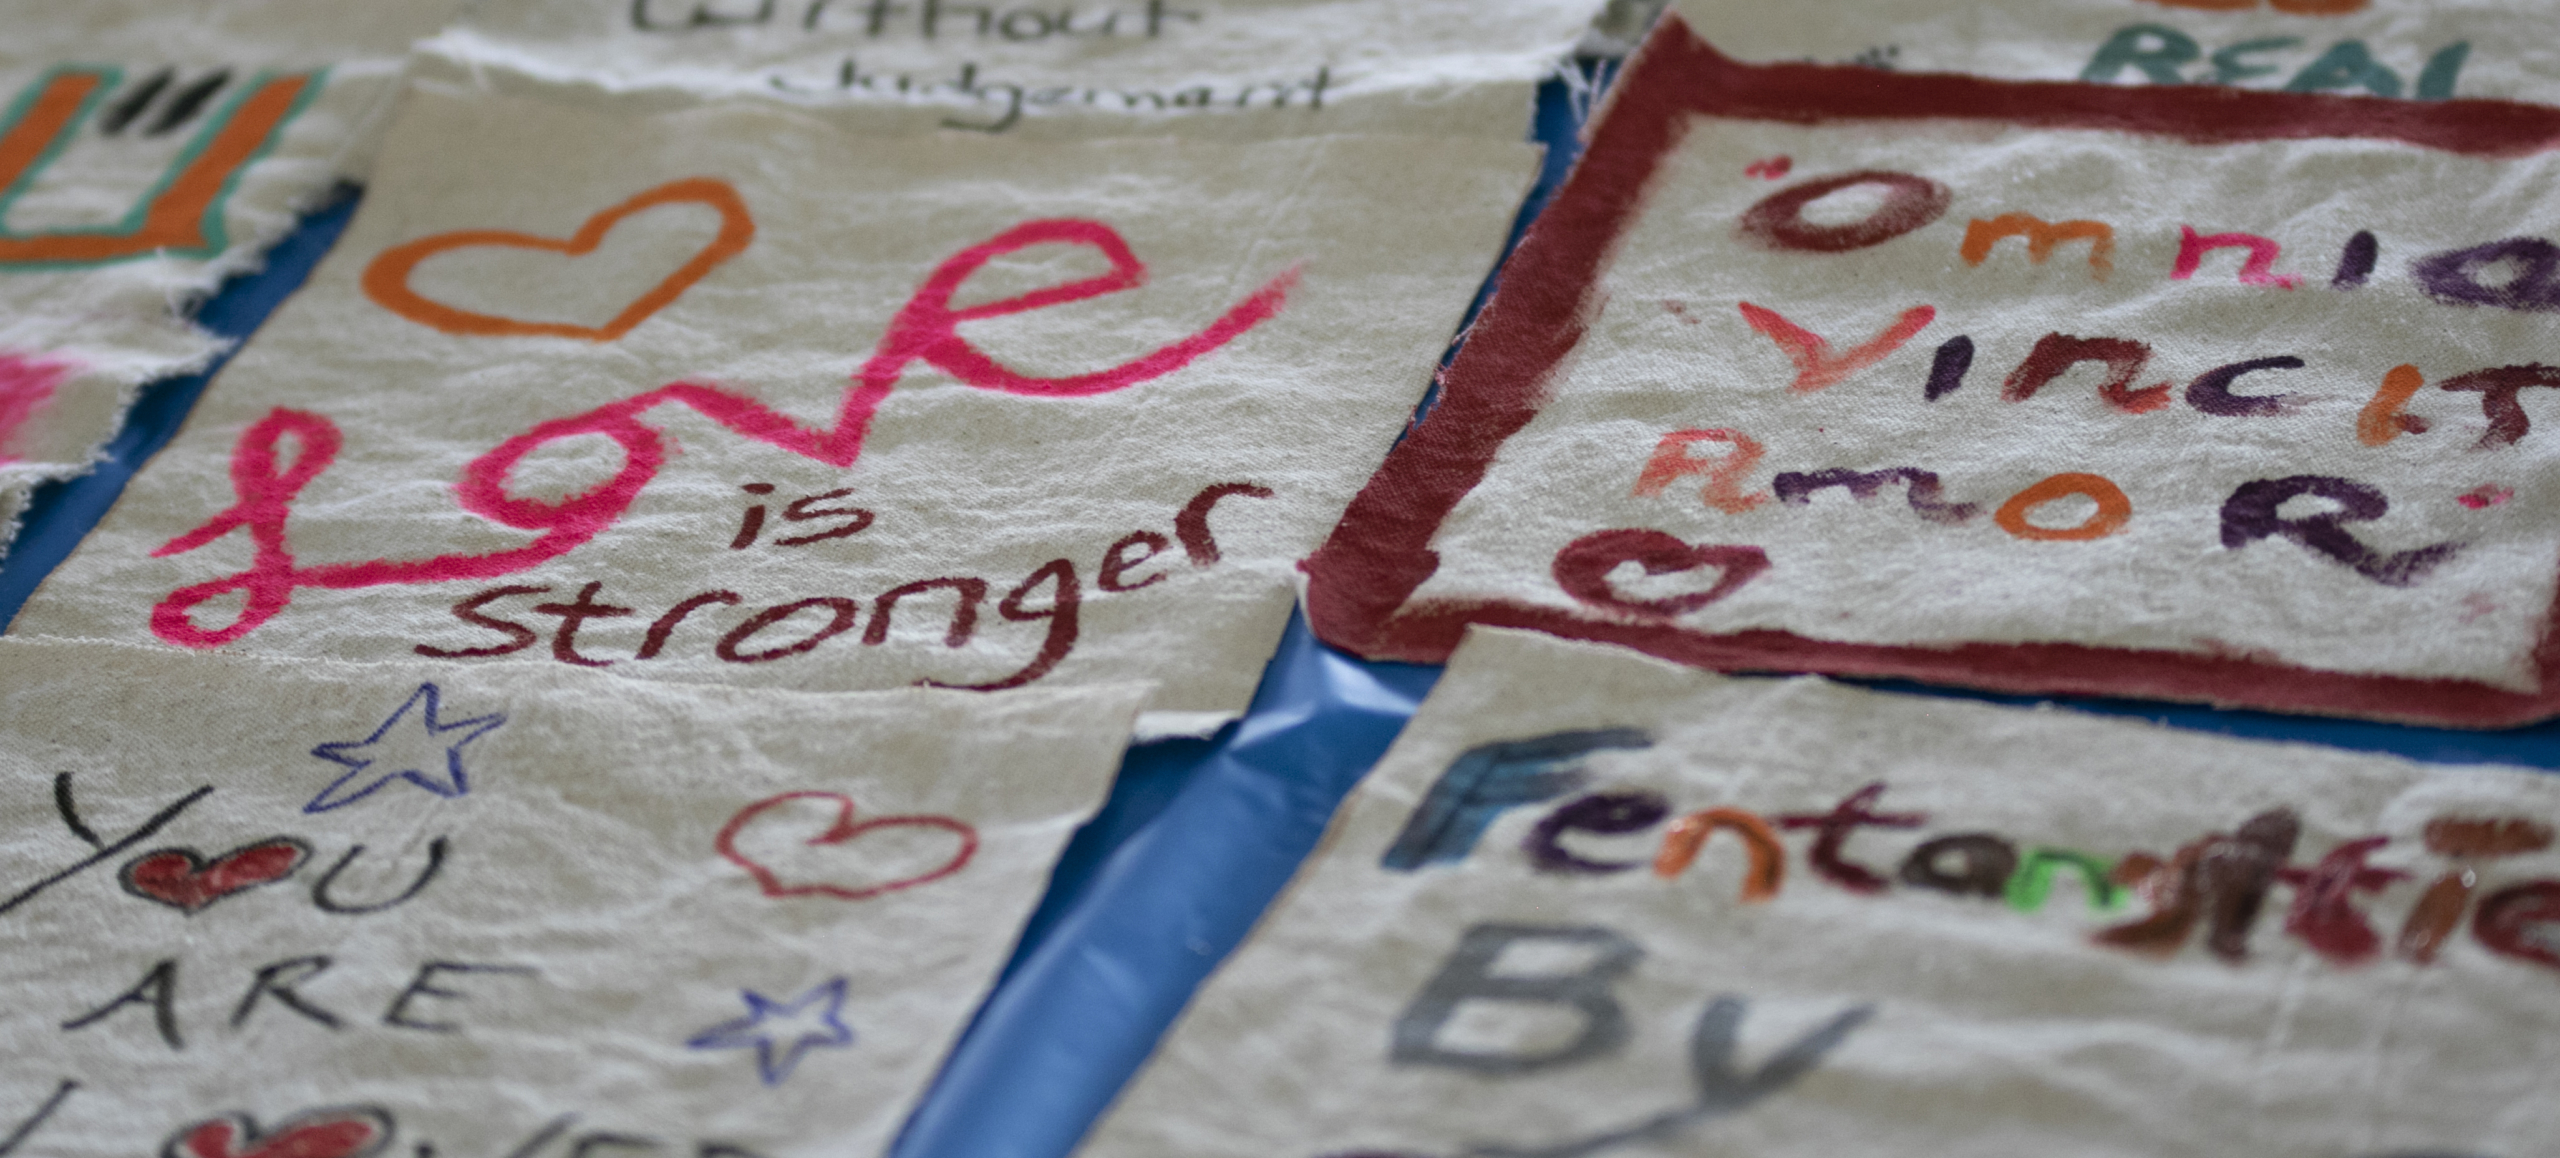 A quilt made up of encourage messages to people who use drugs